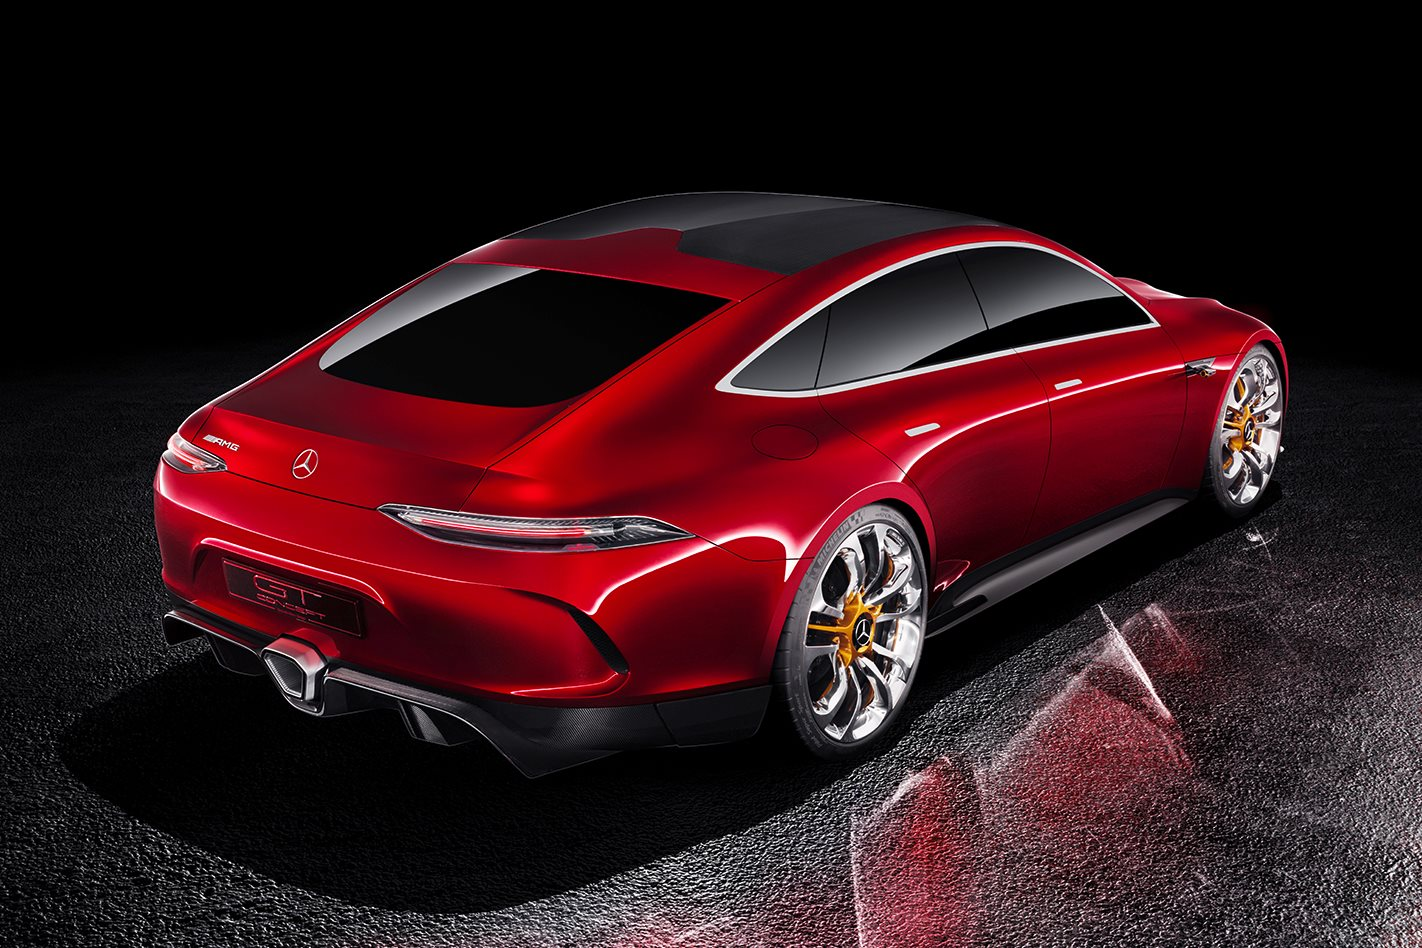 AMG GT 4 Concept